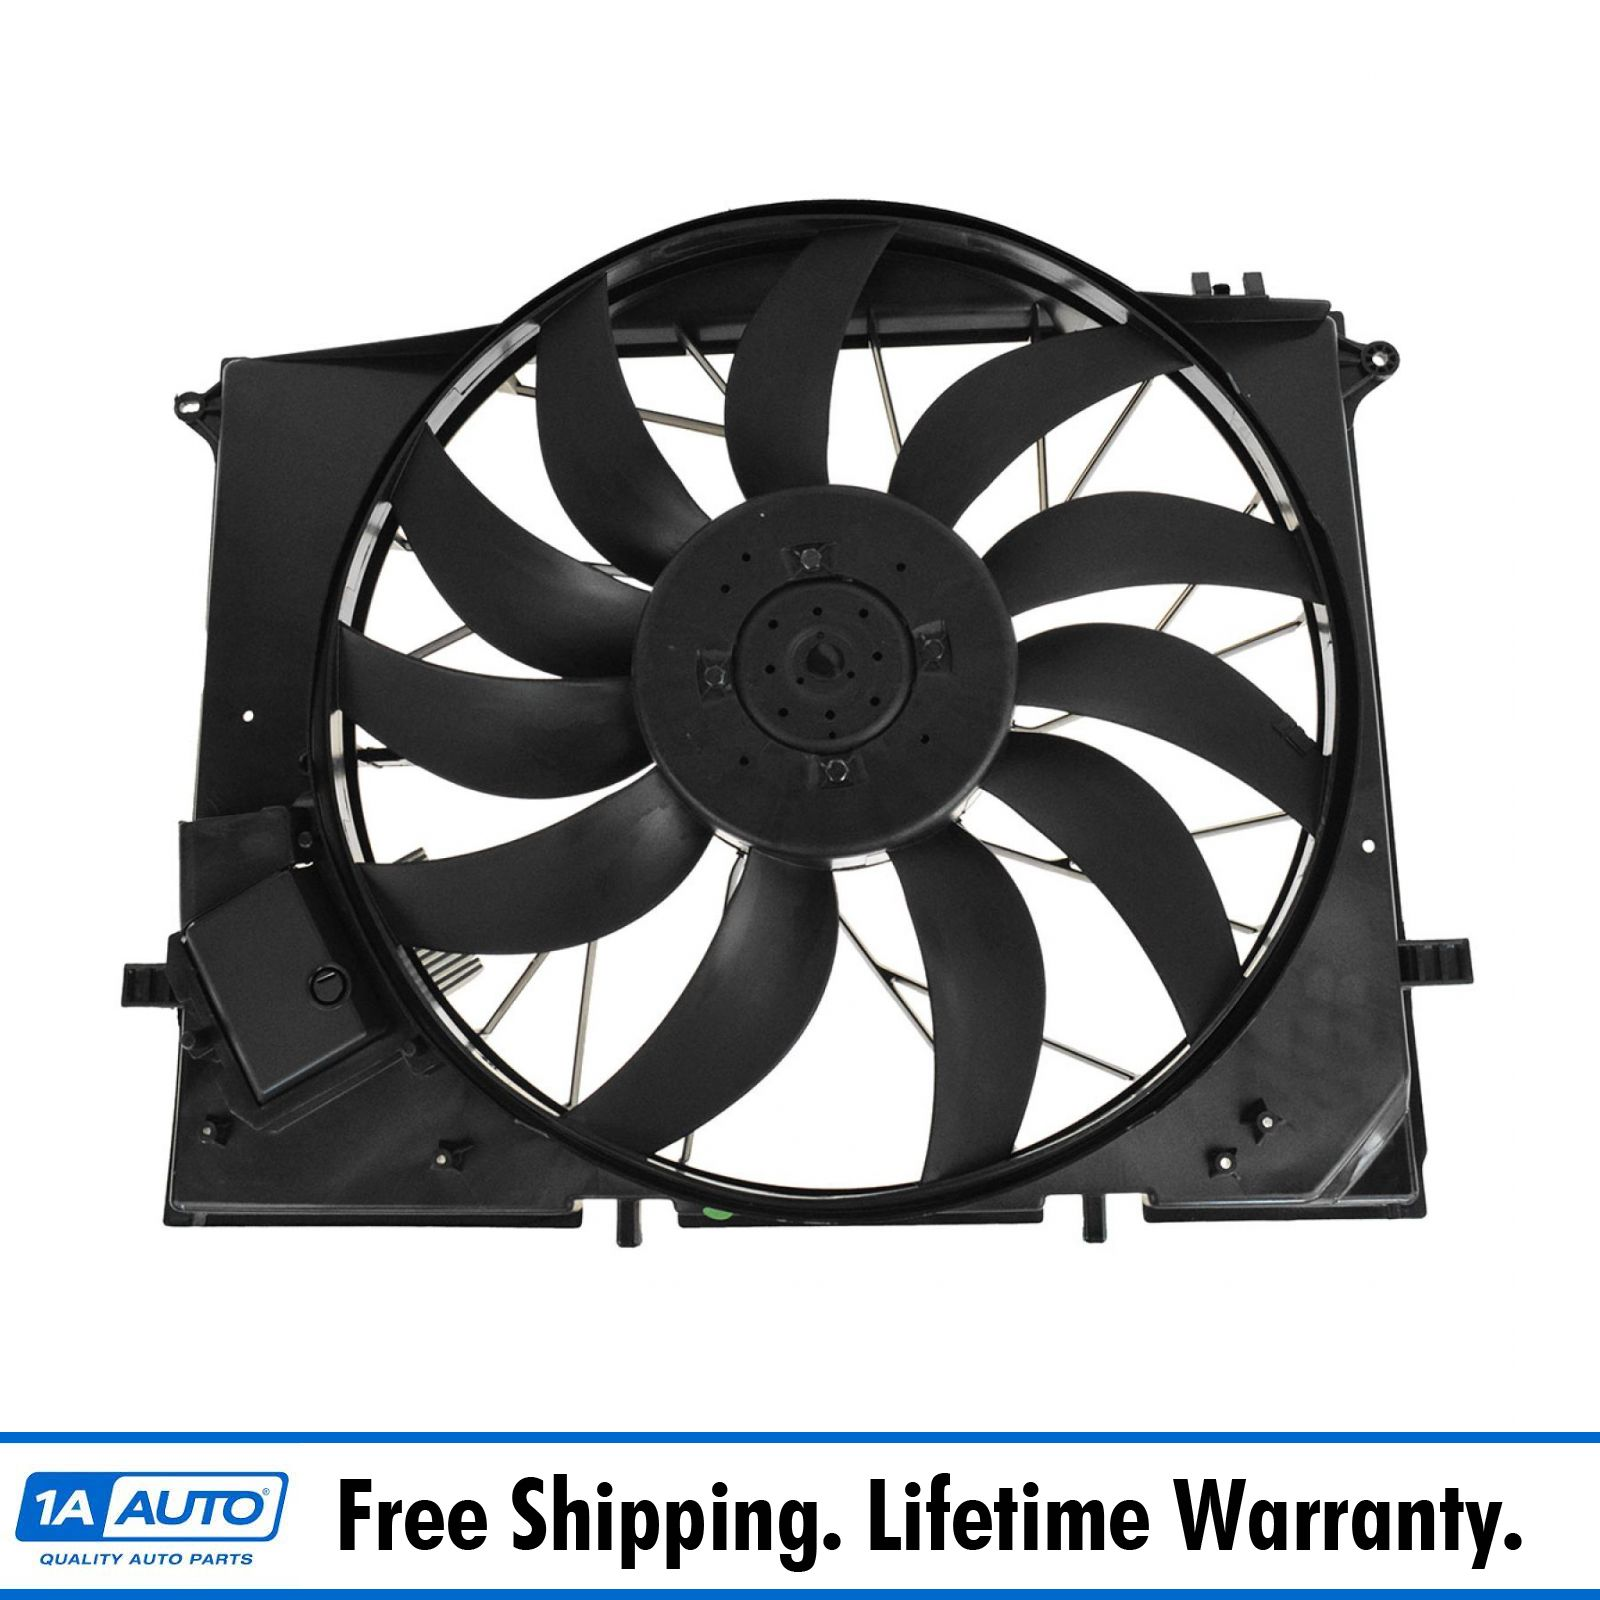 11 Blade Radiator Cooling Fan Assembly for CL500 S350 S430 S500 S55 CL55